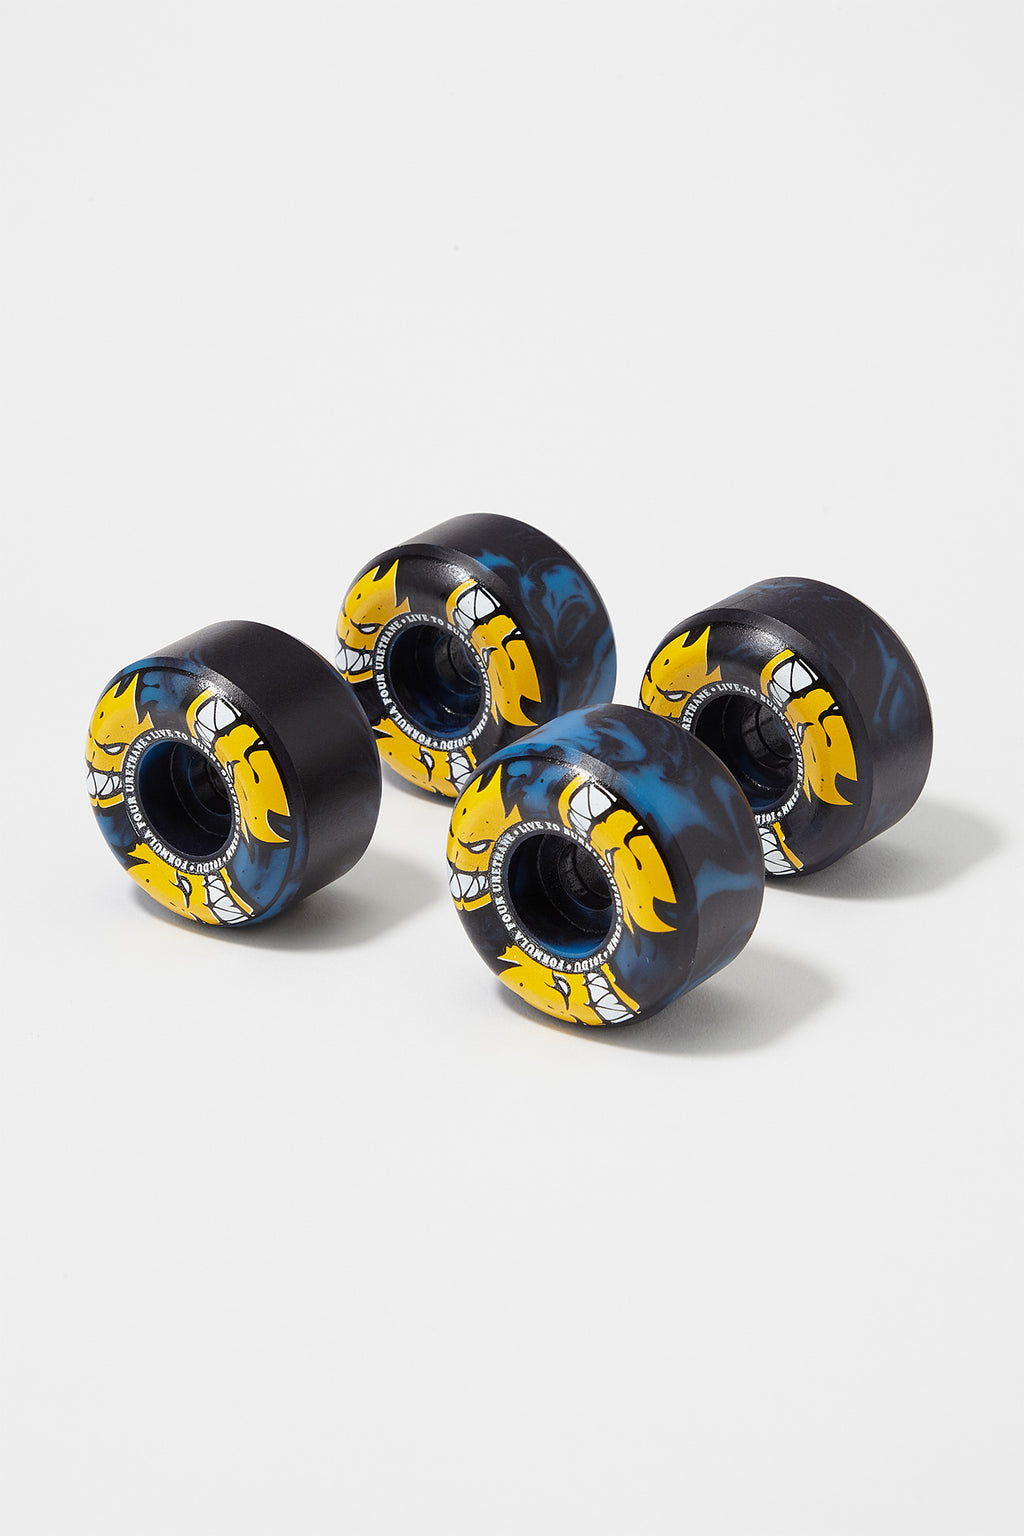 Spitfire F4 Afterburn 52mm Skateboard Wheels